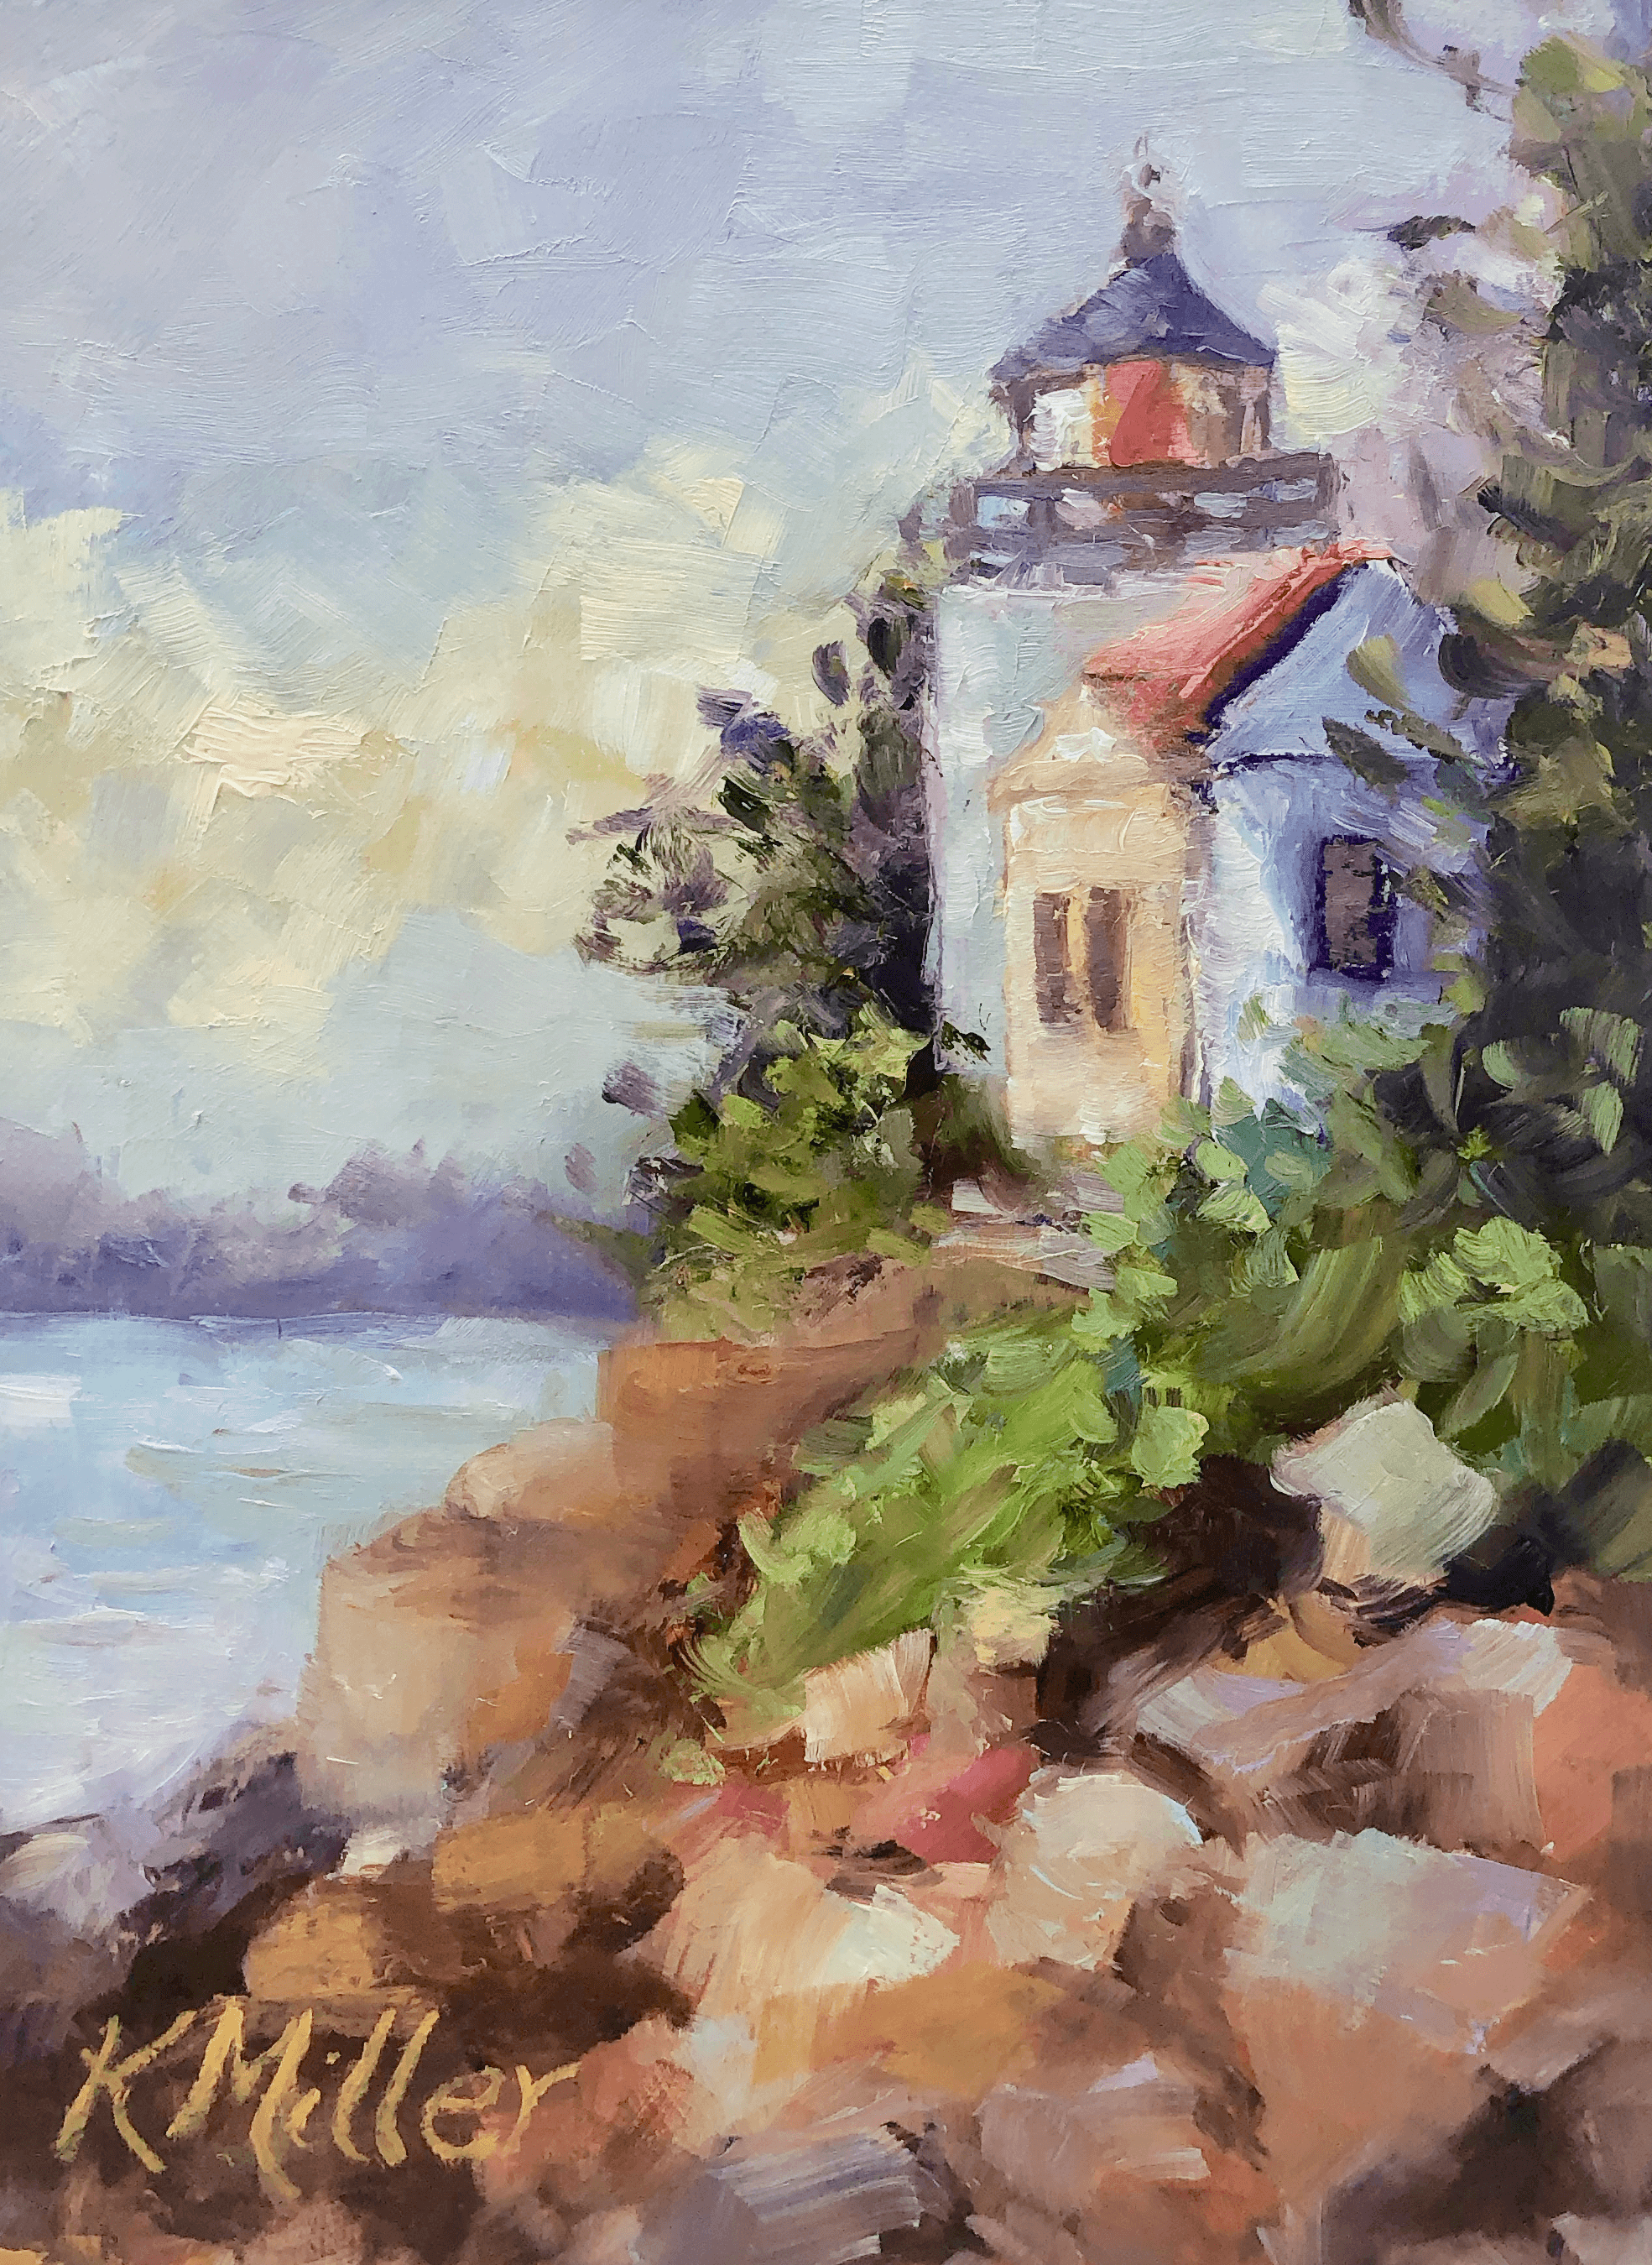 Bass Harbor Head Light Station painting by Kathy Miller